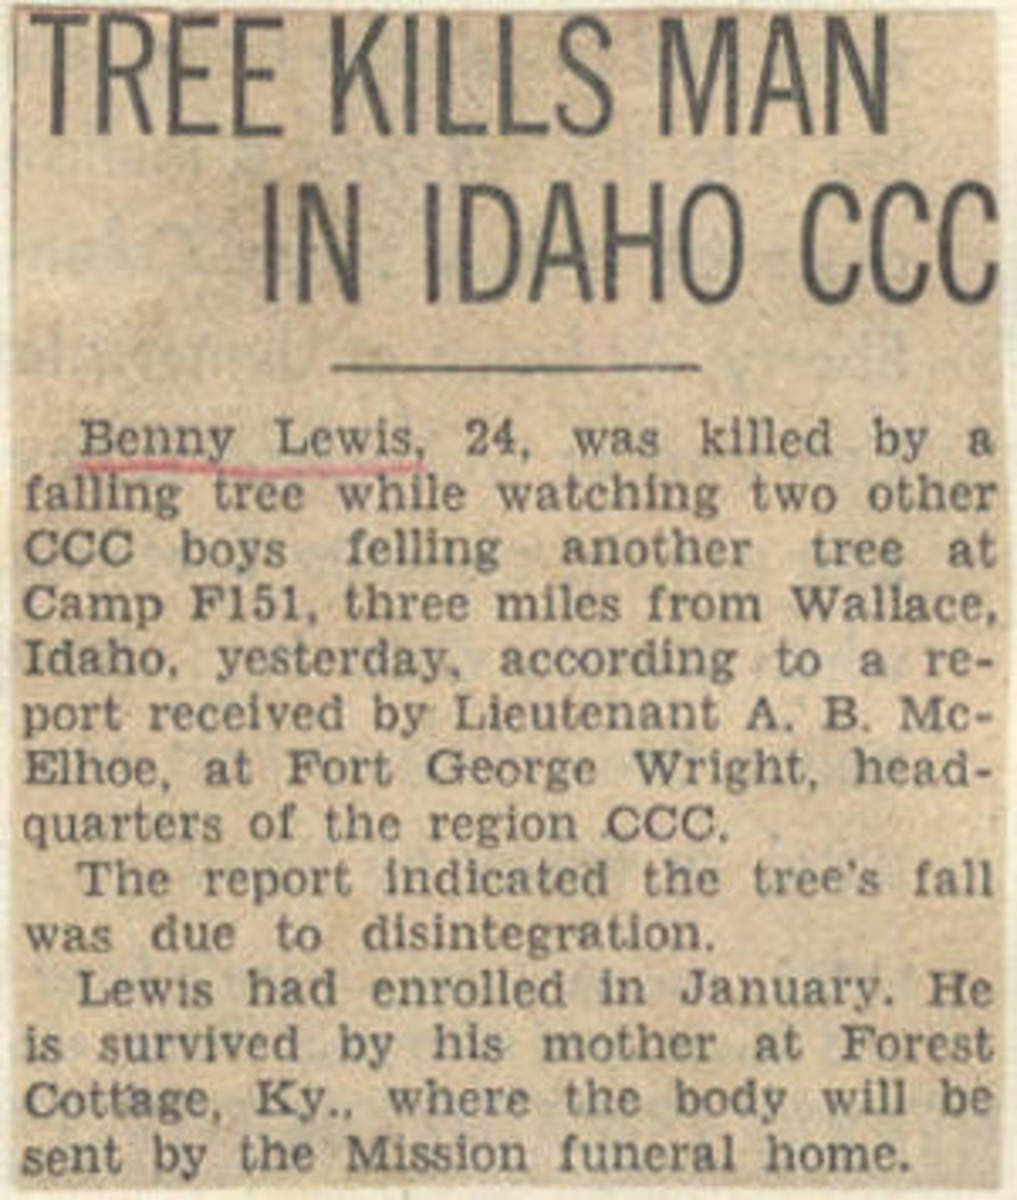 Newspaper clipping announcing his death. Even though it only mentions his mother, he was also survived by his father and several siblings, including my grandmother.